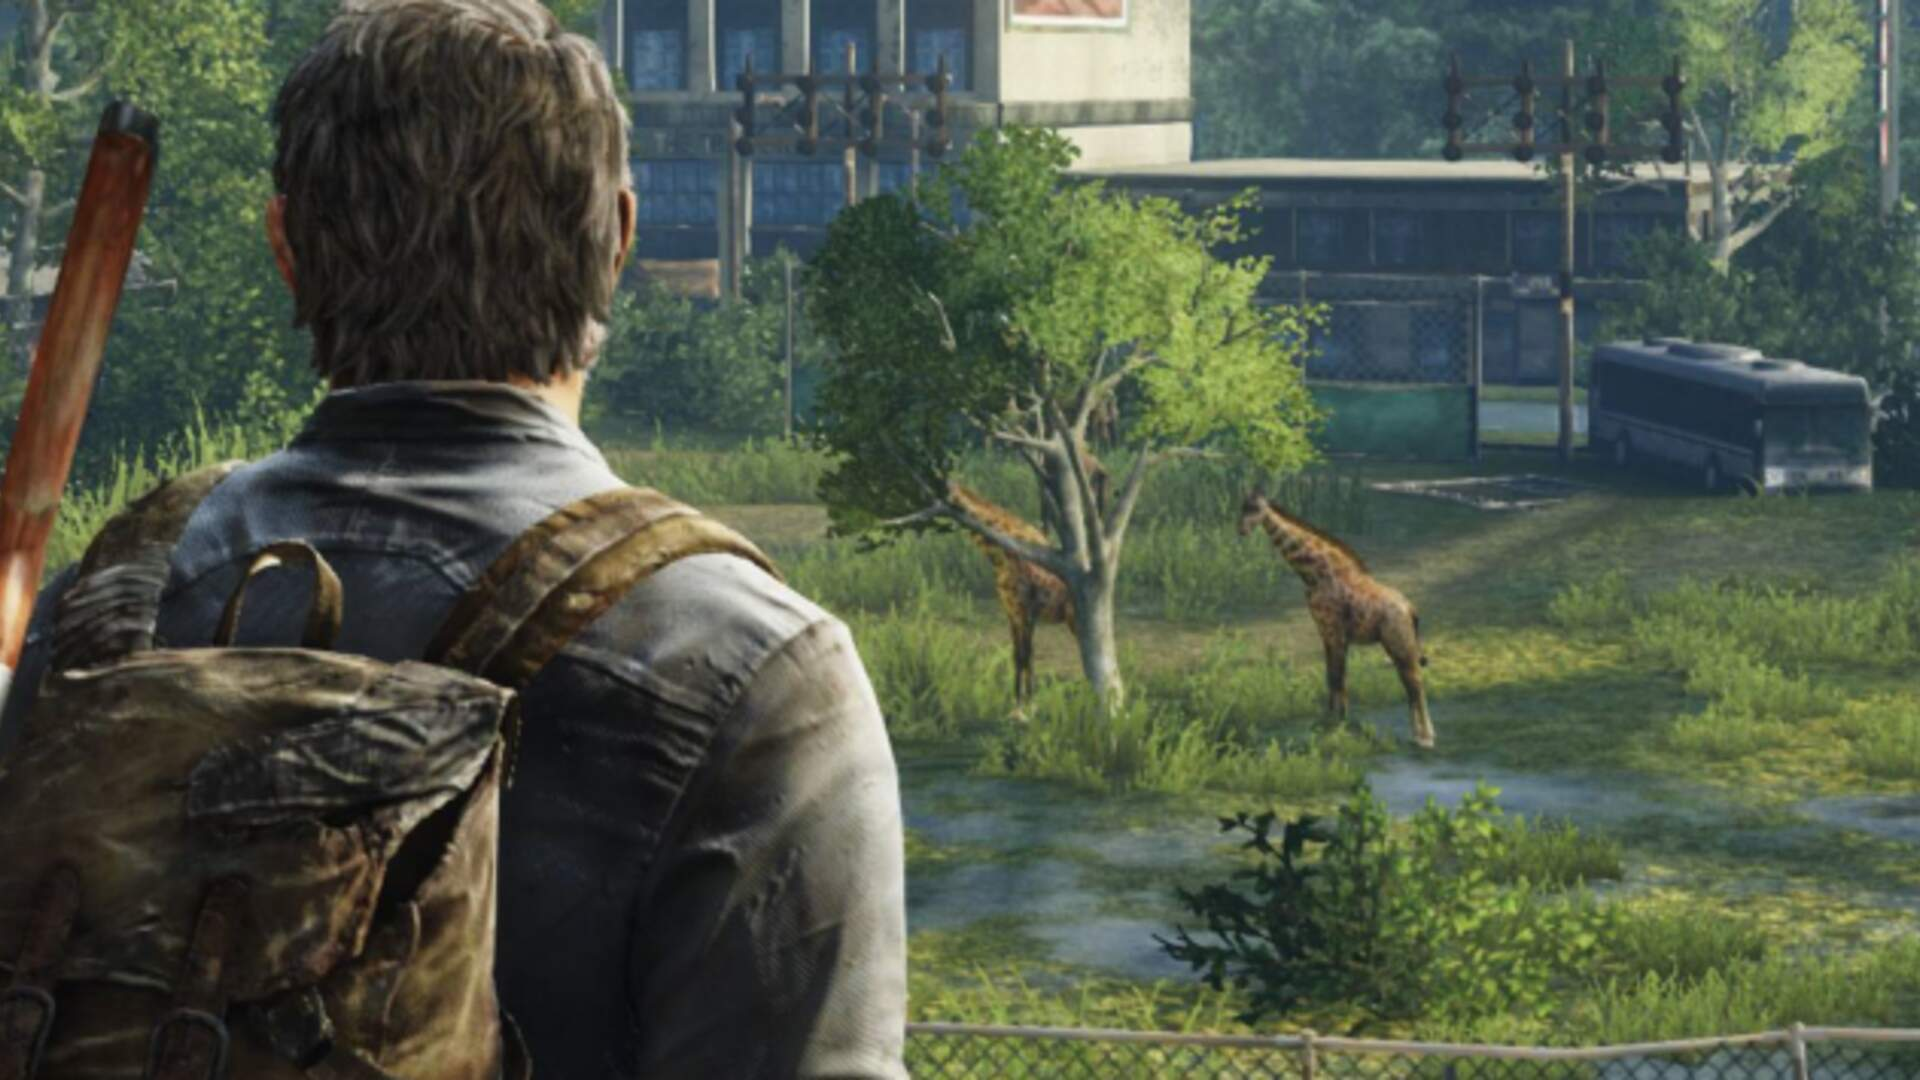 Naughty Dog Celebrates Over 17 Million Copies Sold for The Last of Us on the Game's Fifth Anniversary